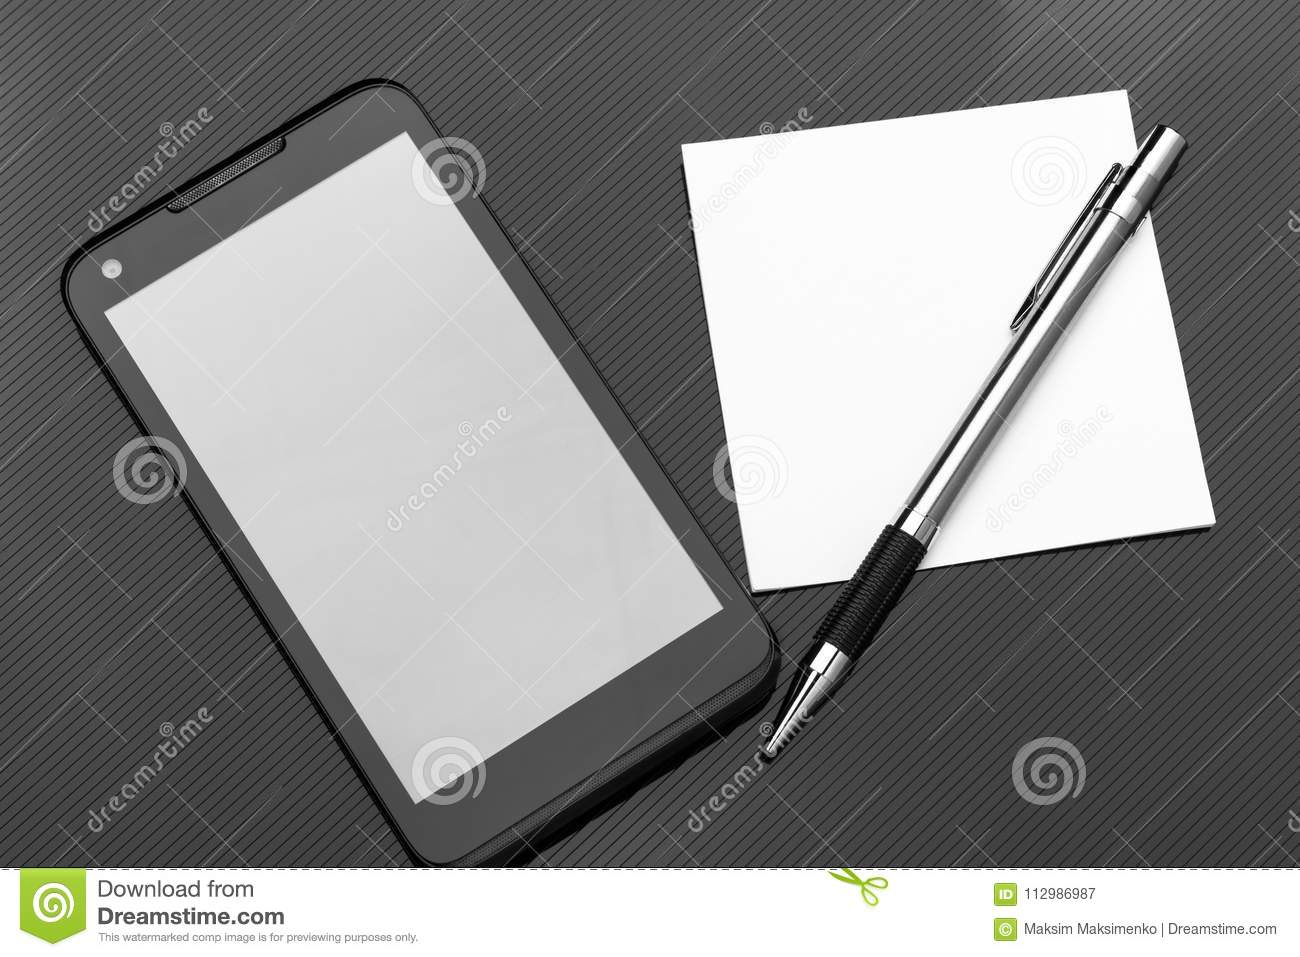 Smartphone with blank screen, pen and stickers on dark background.